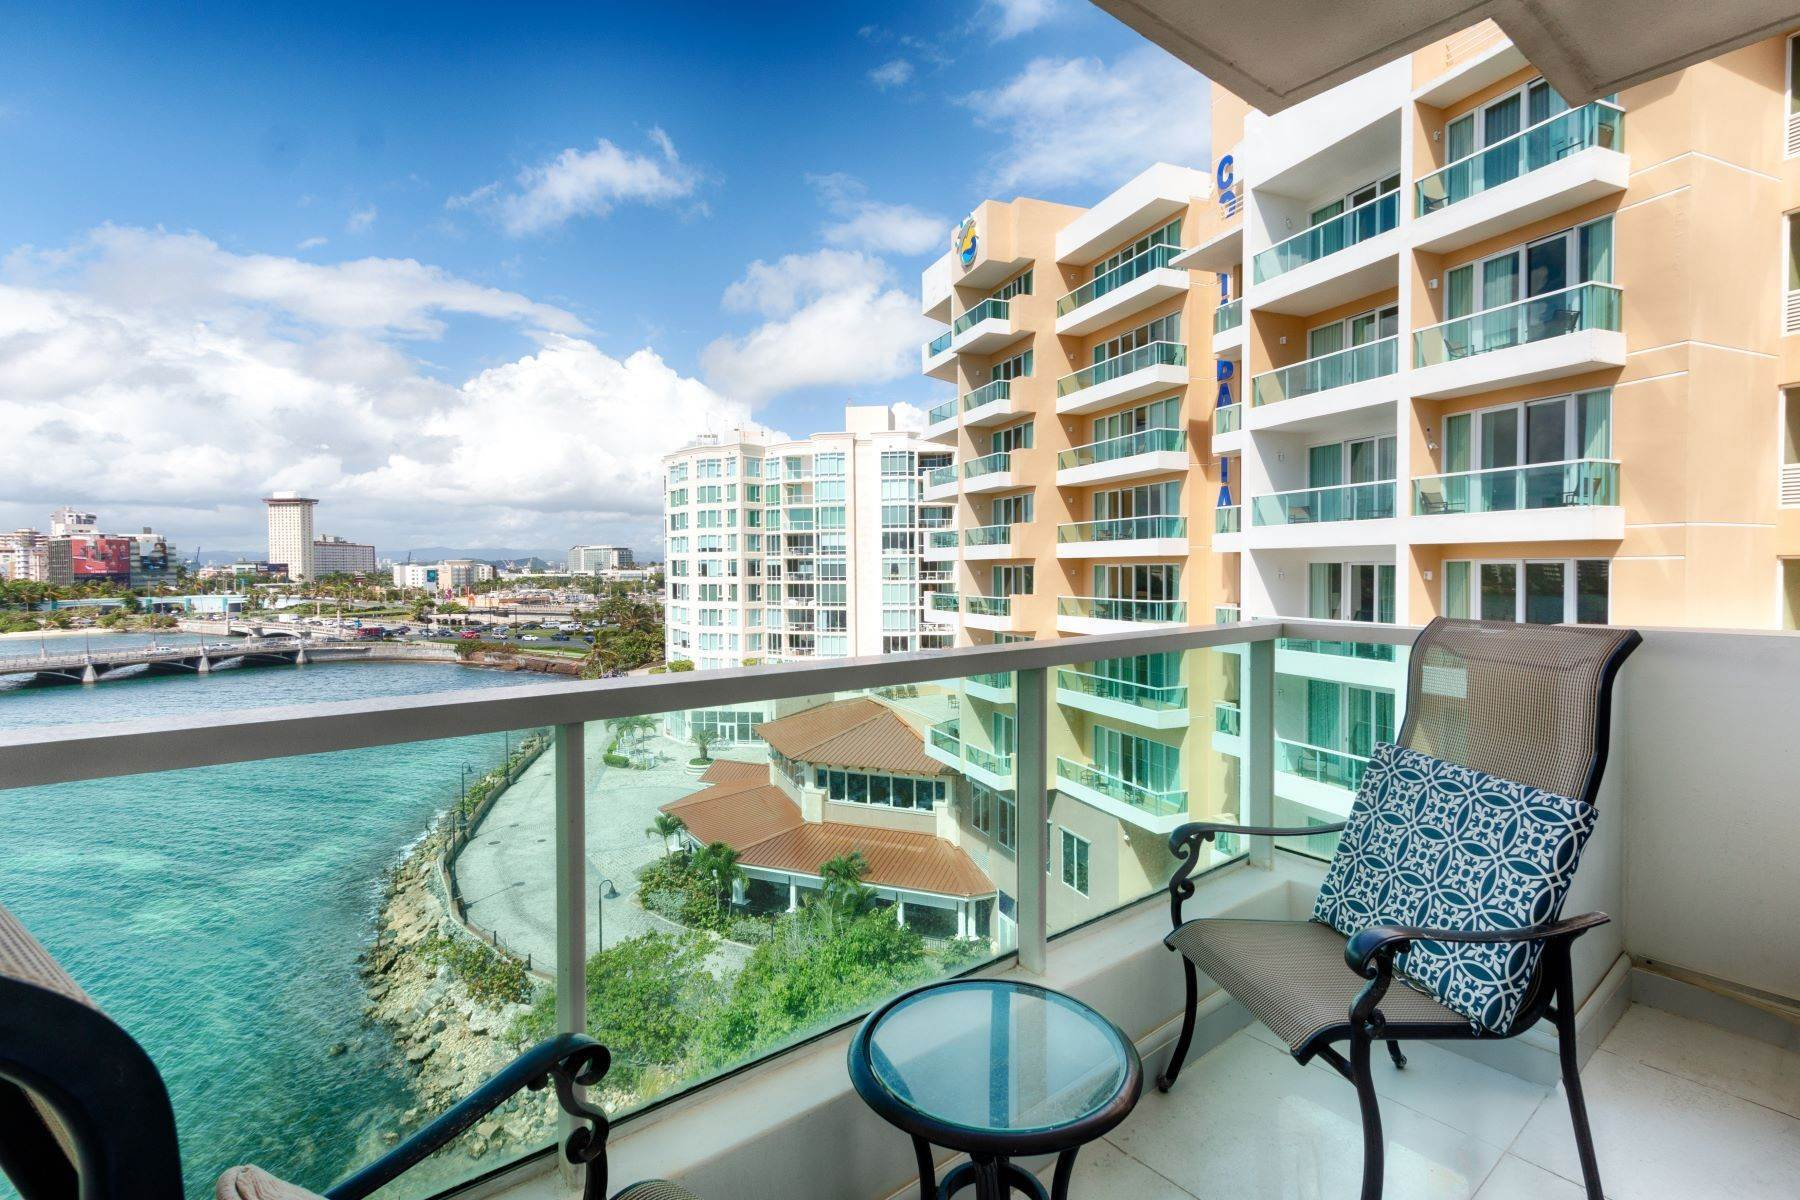 Apartments for Sale at Oceanfront Apartment at Condado Lagoon Villas 1 Los Rosales St., Apt. 7725 & 7726 San Juan, 00901 Puerto Rico